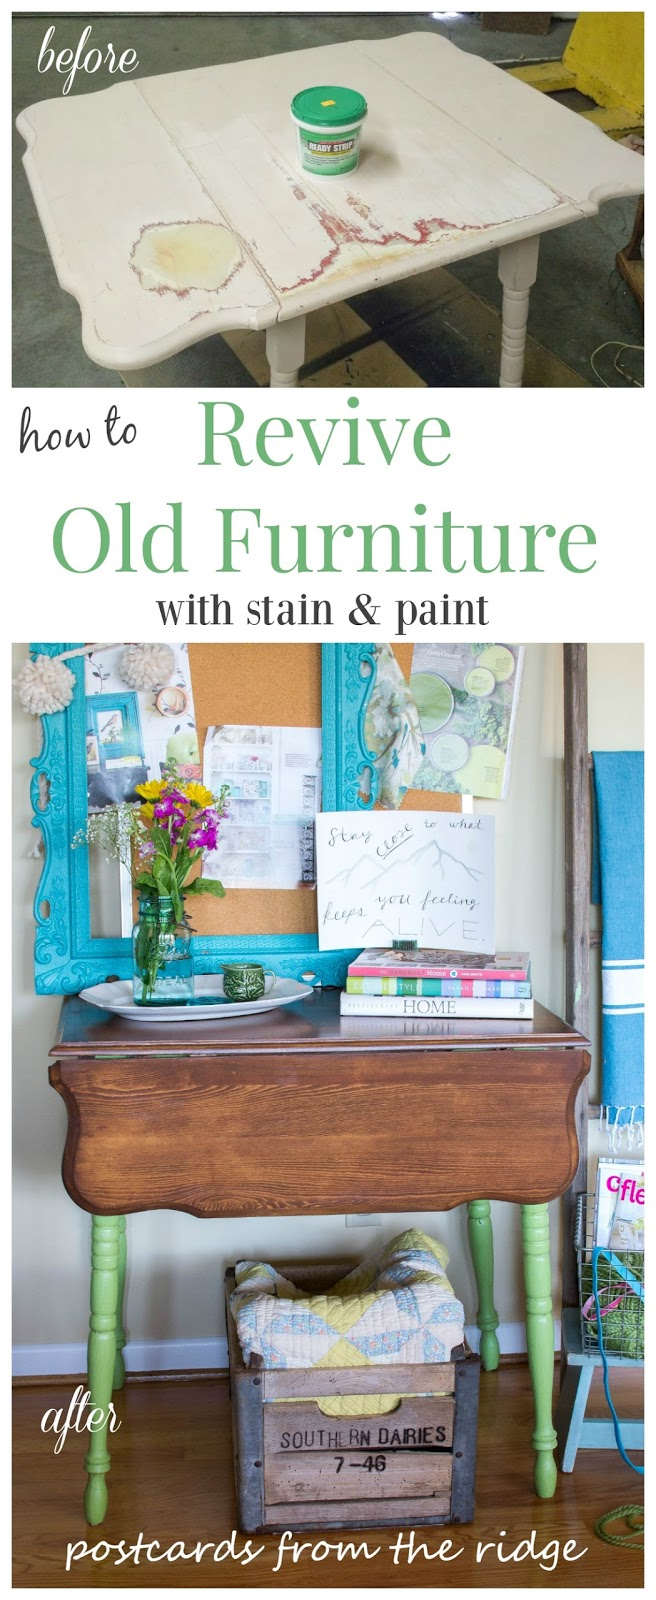 old furniture makeover. How To Revive Old Furniture With Paint And Stain Makeover